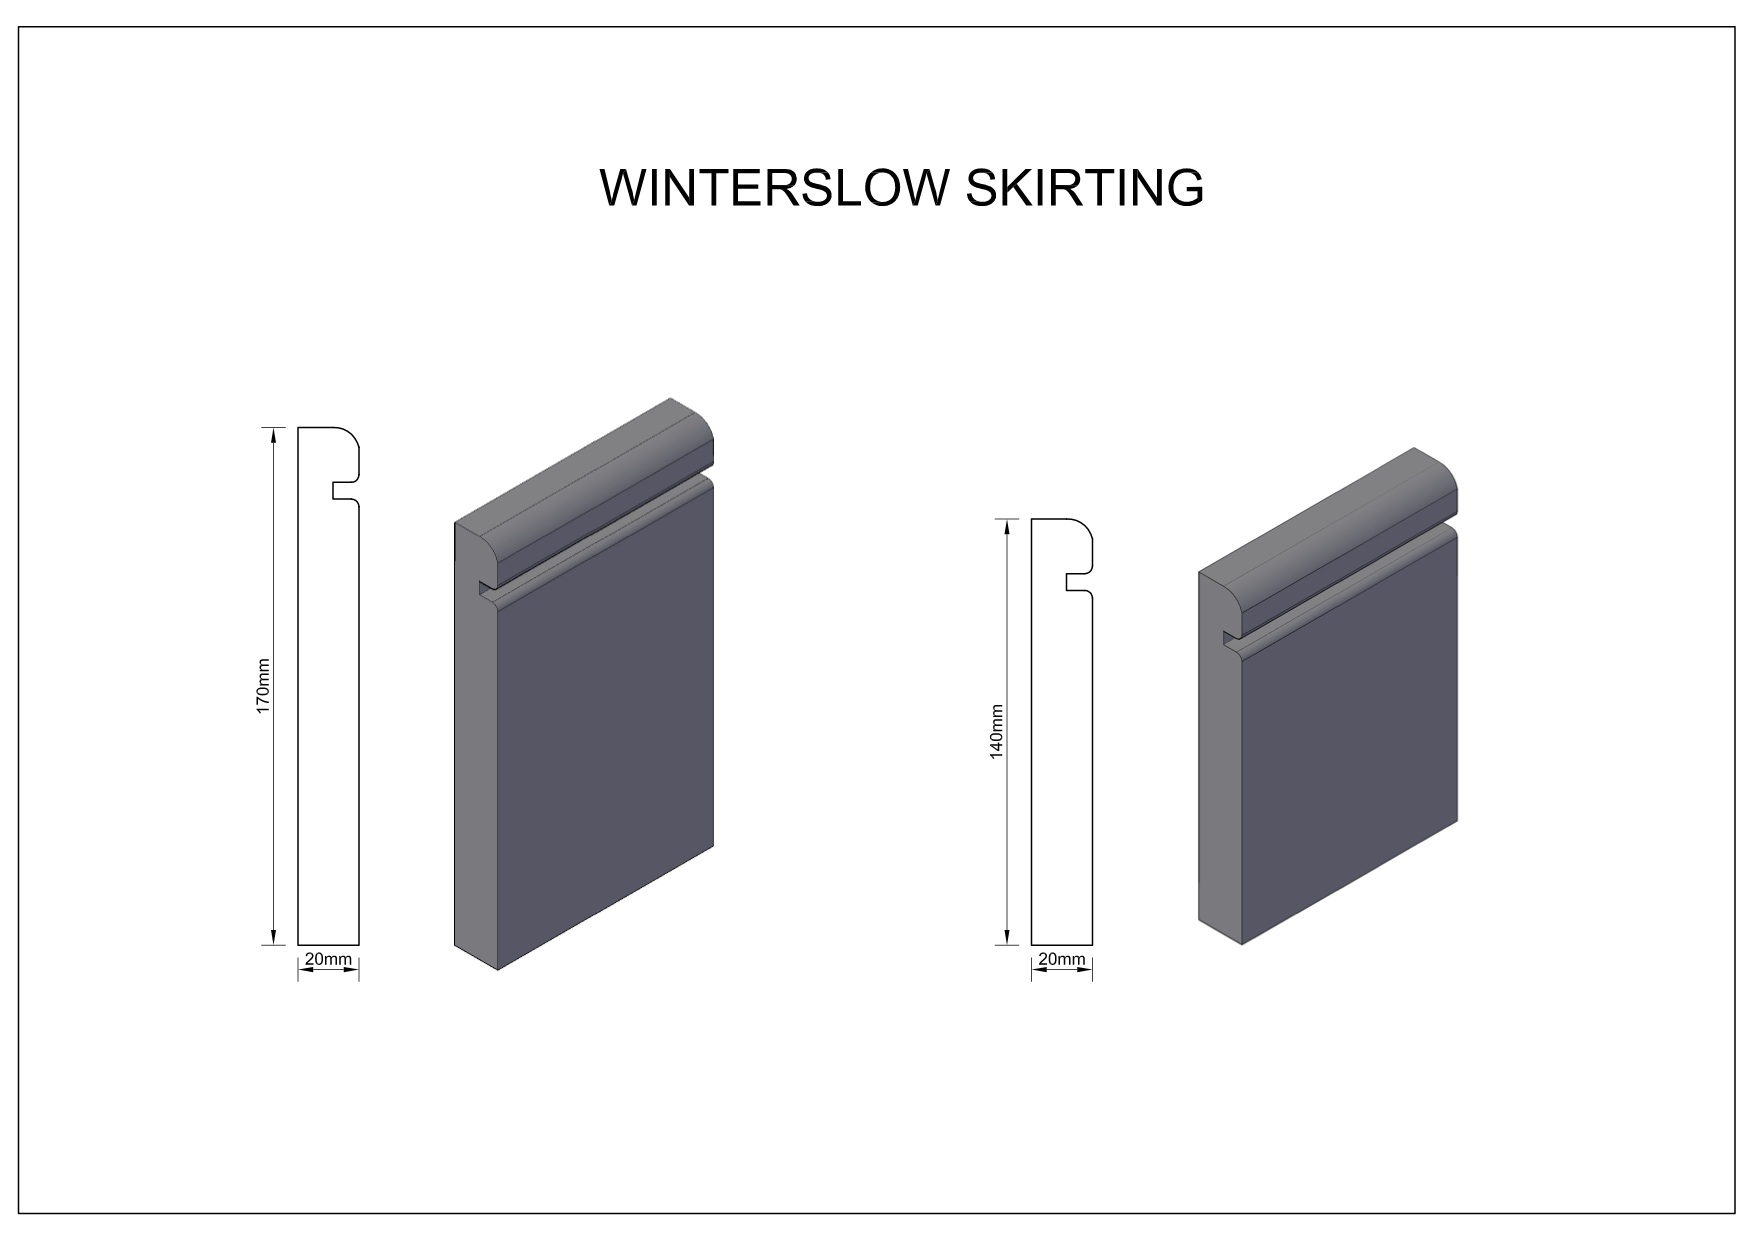 Winterslow-Skirting large